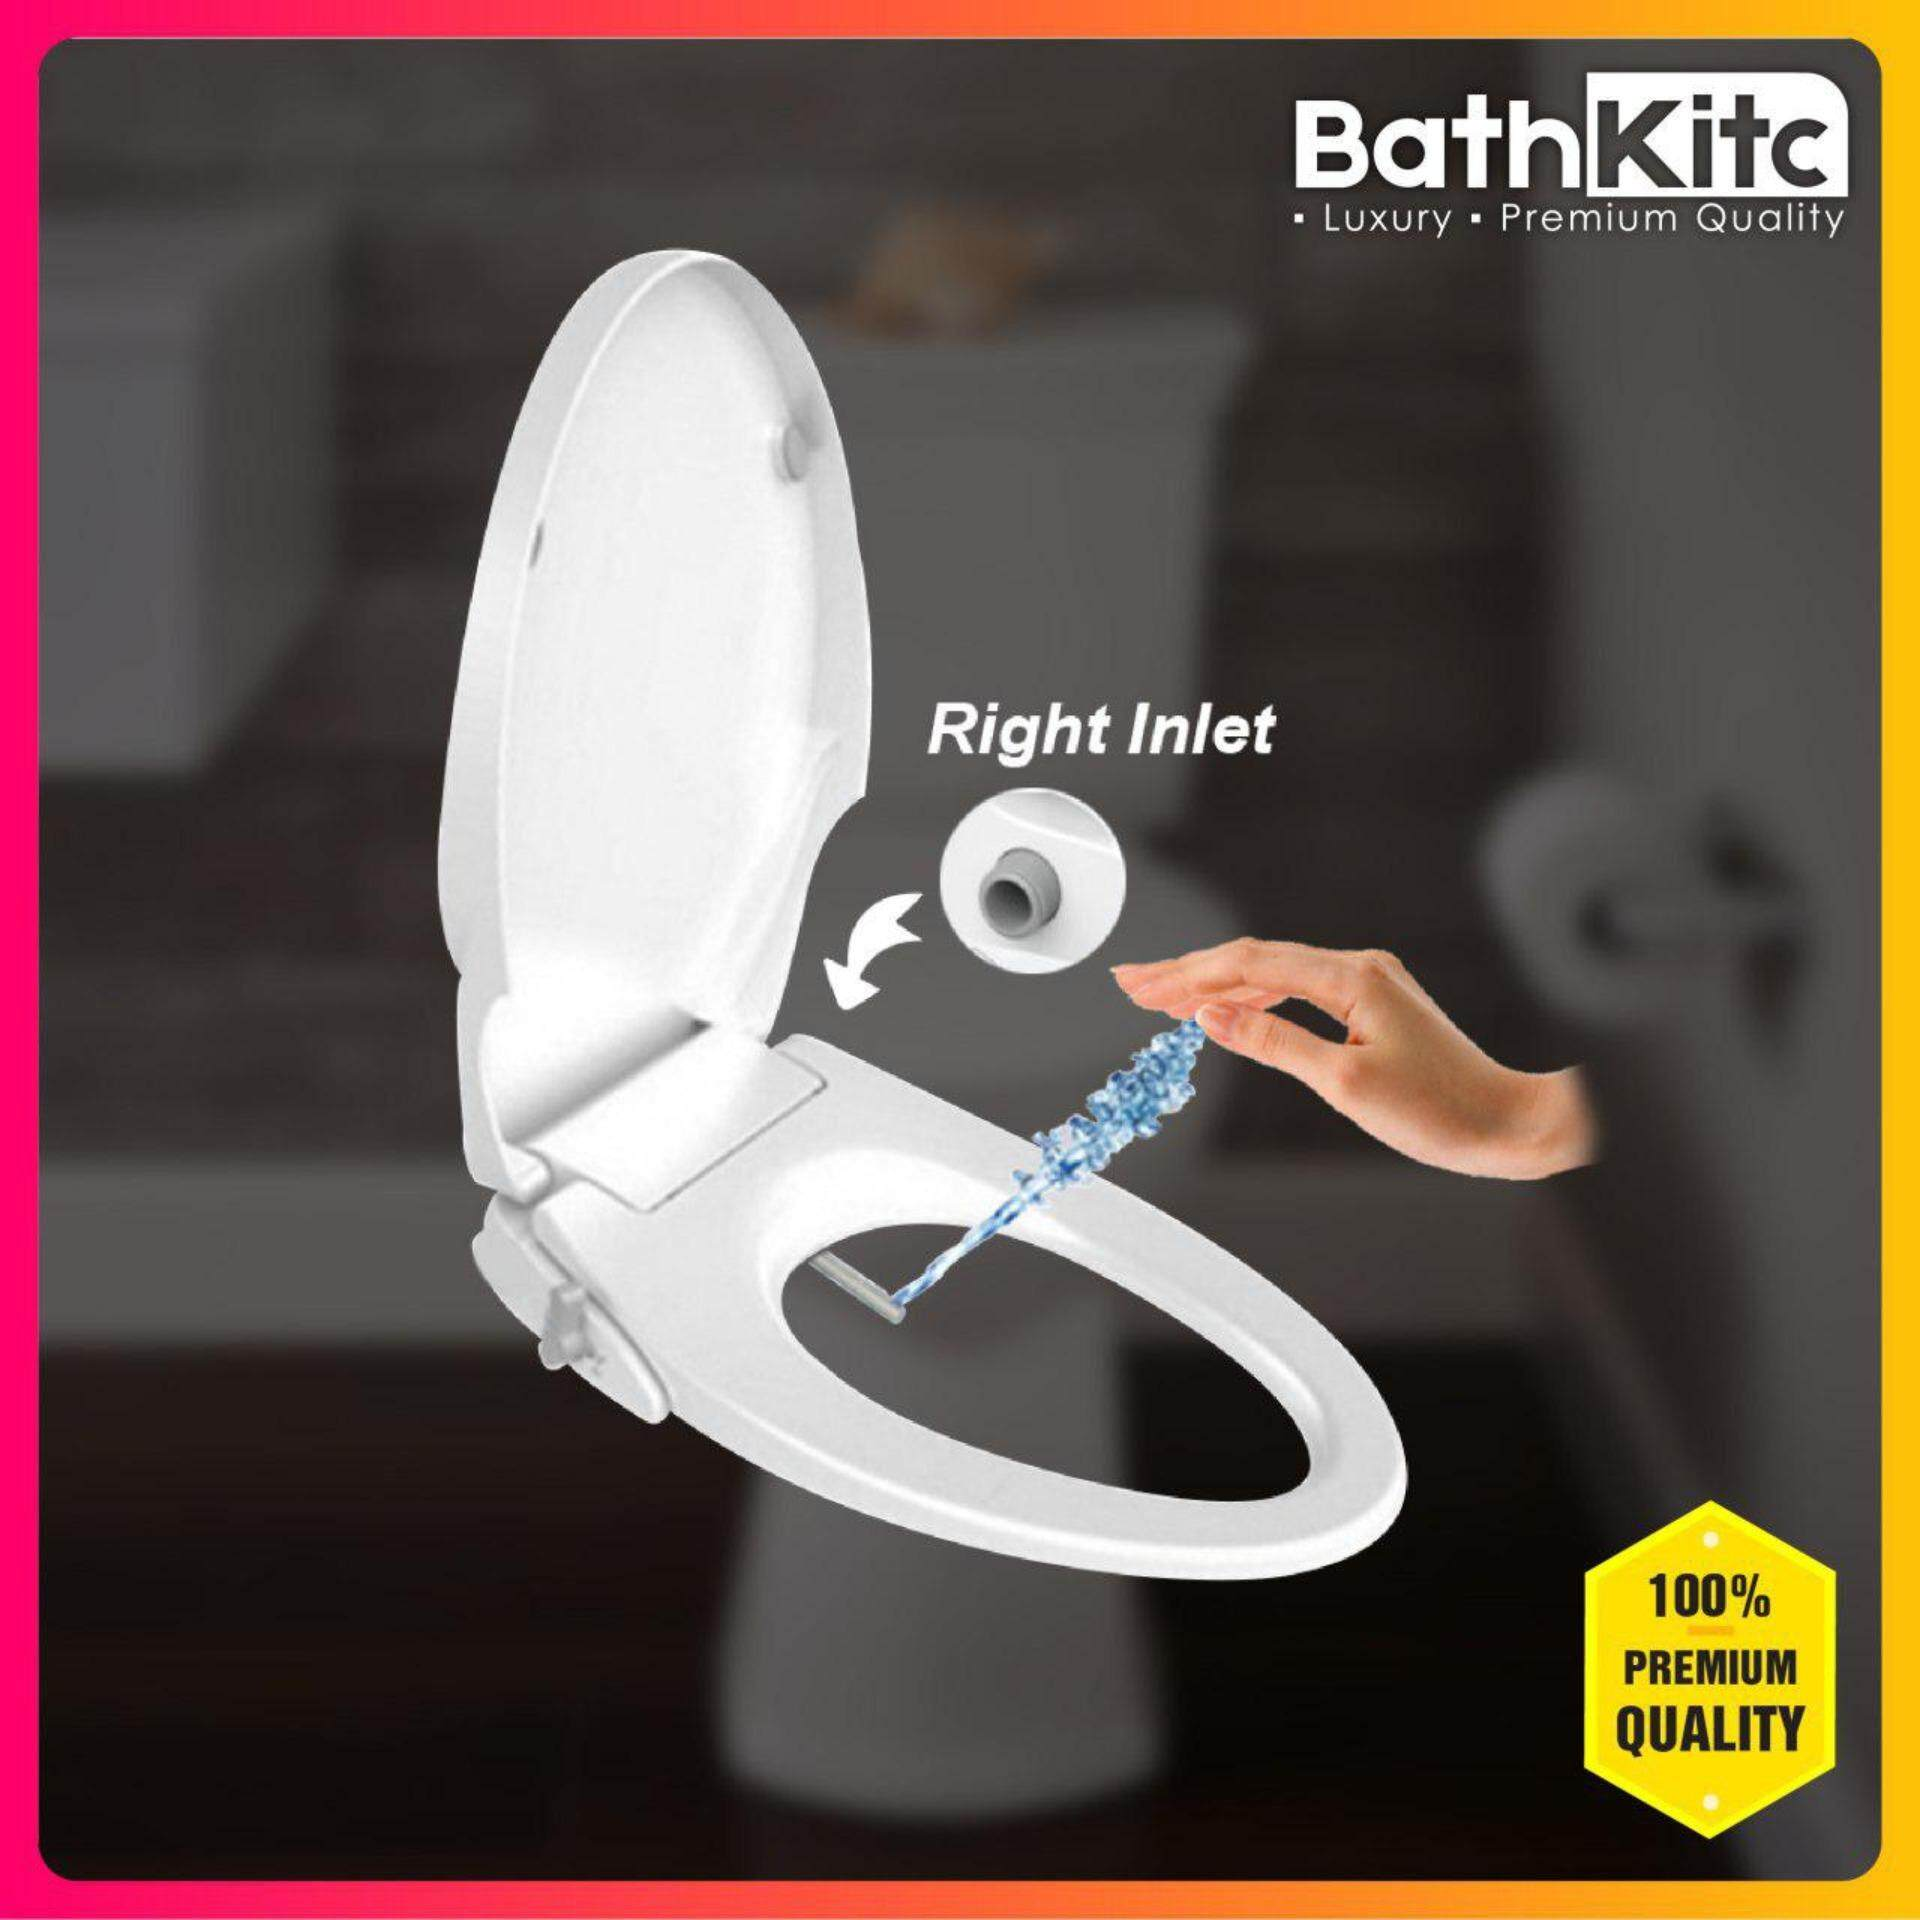 Surprising Bathkitc Bathroom Toilet Bidet Seat Cover V Shape Right Inlet Gmtry Best Dining Table And Chair Ideas Images Gmtryco